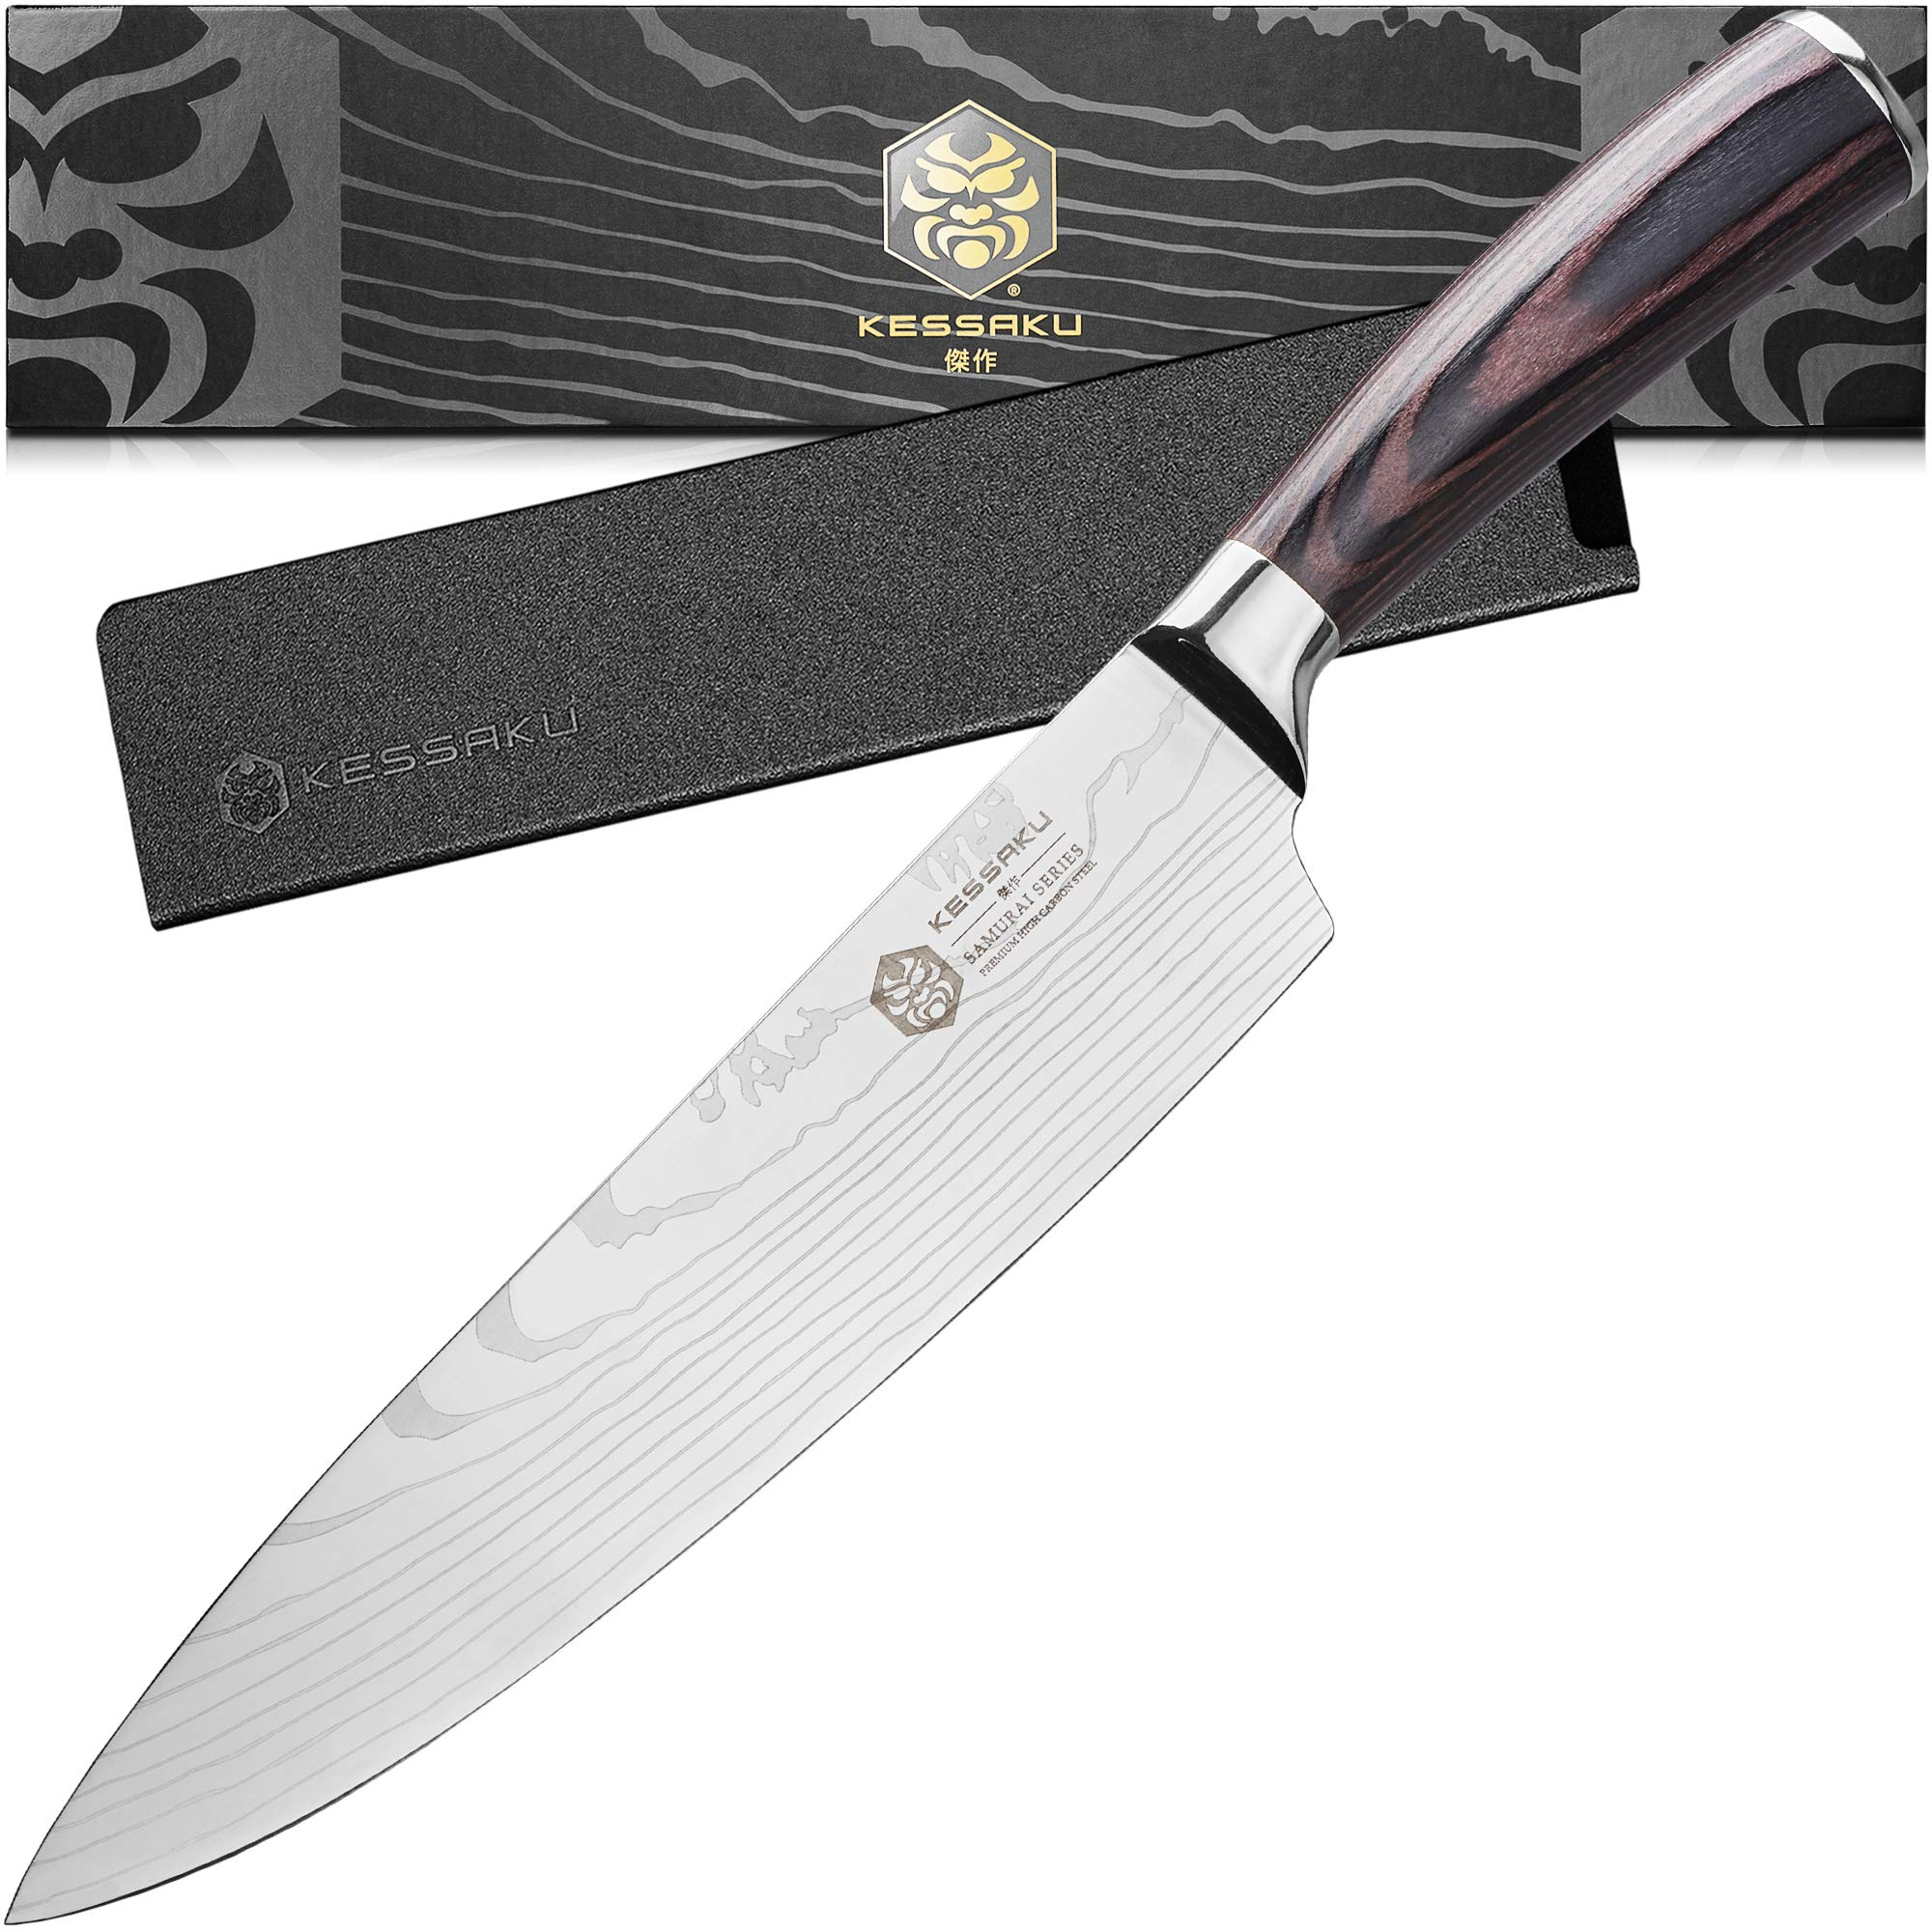 Kessaku 8-Inch Chef Knife - Samurai Series - High Carbon 7Cr17MoV Stainless Steel with Blade Guard